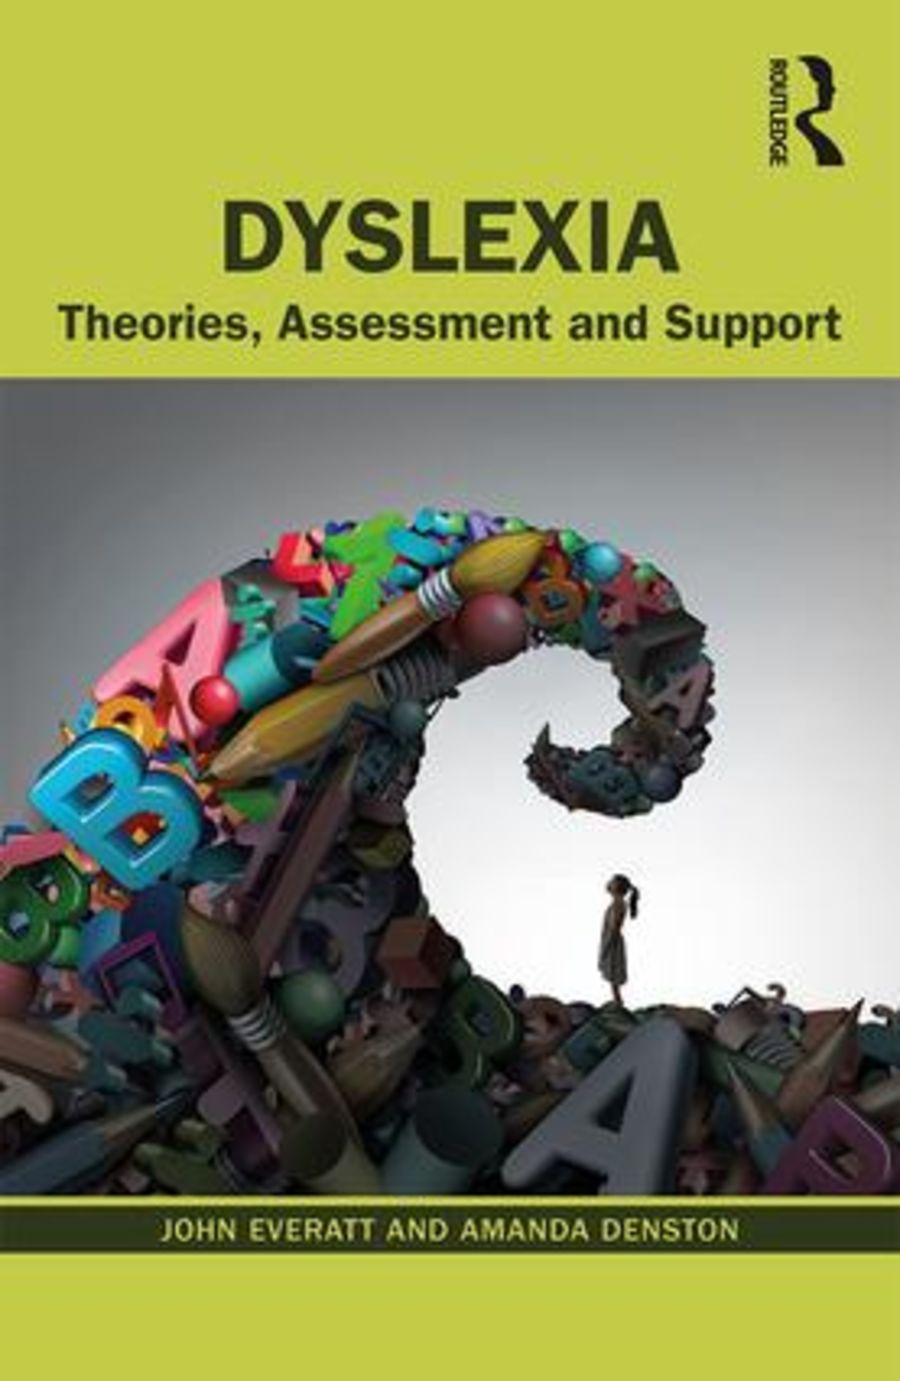 Dyslexia: Theories, Assessment and Support